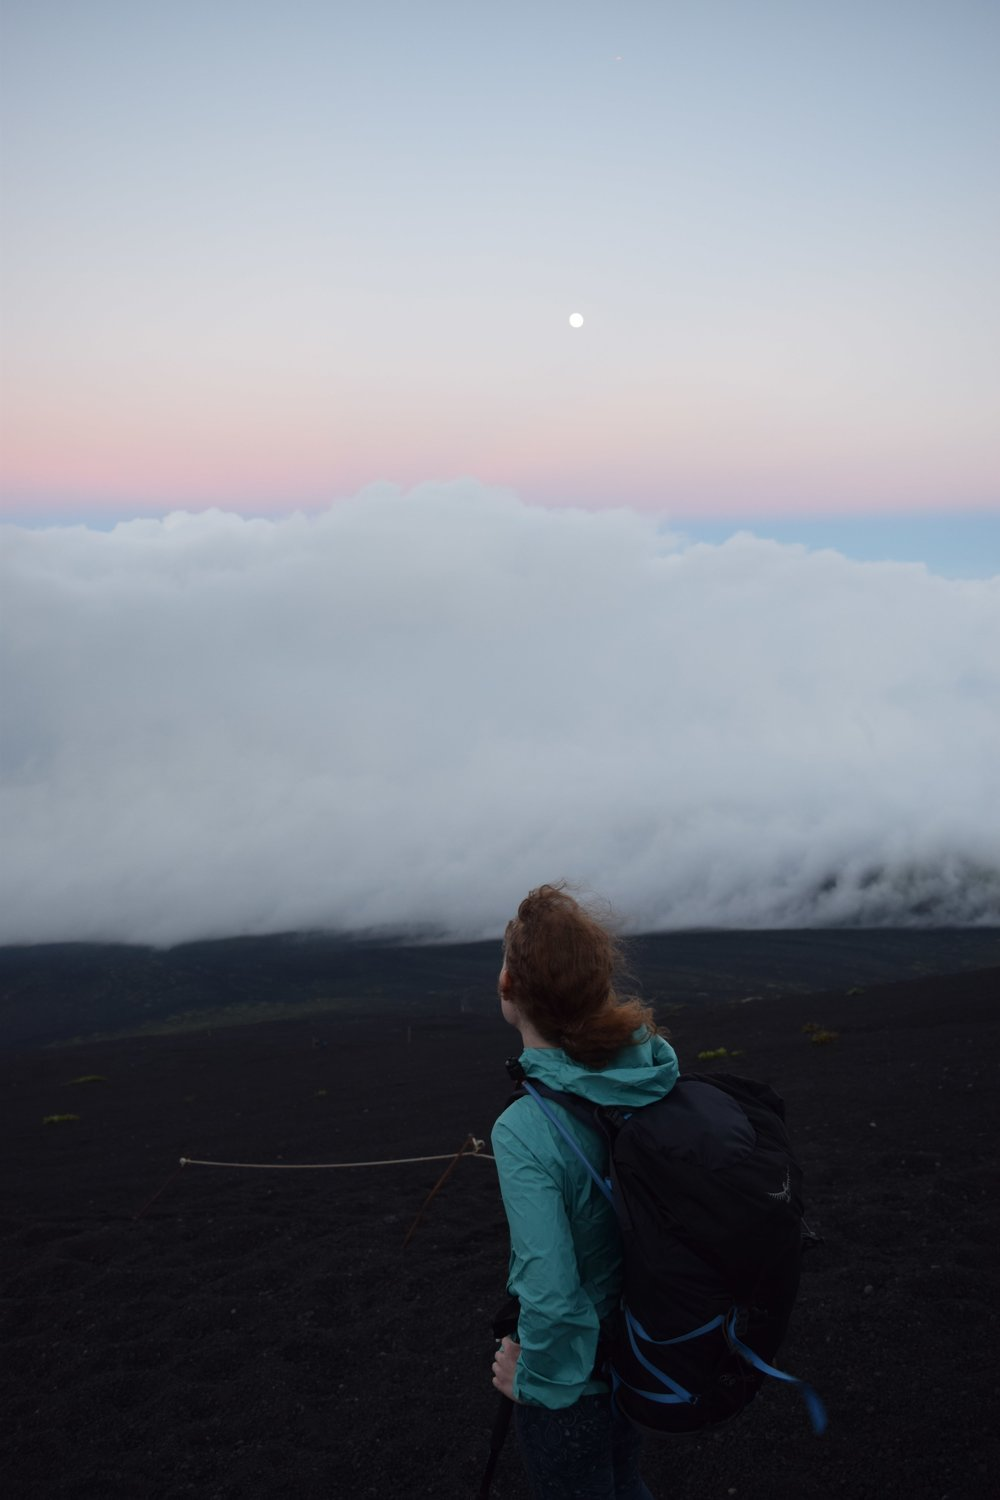 Above the clouds with the moon.